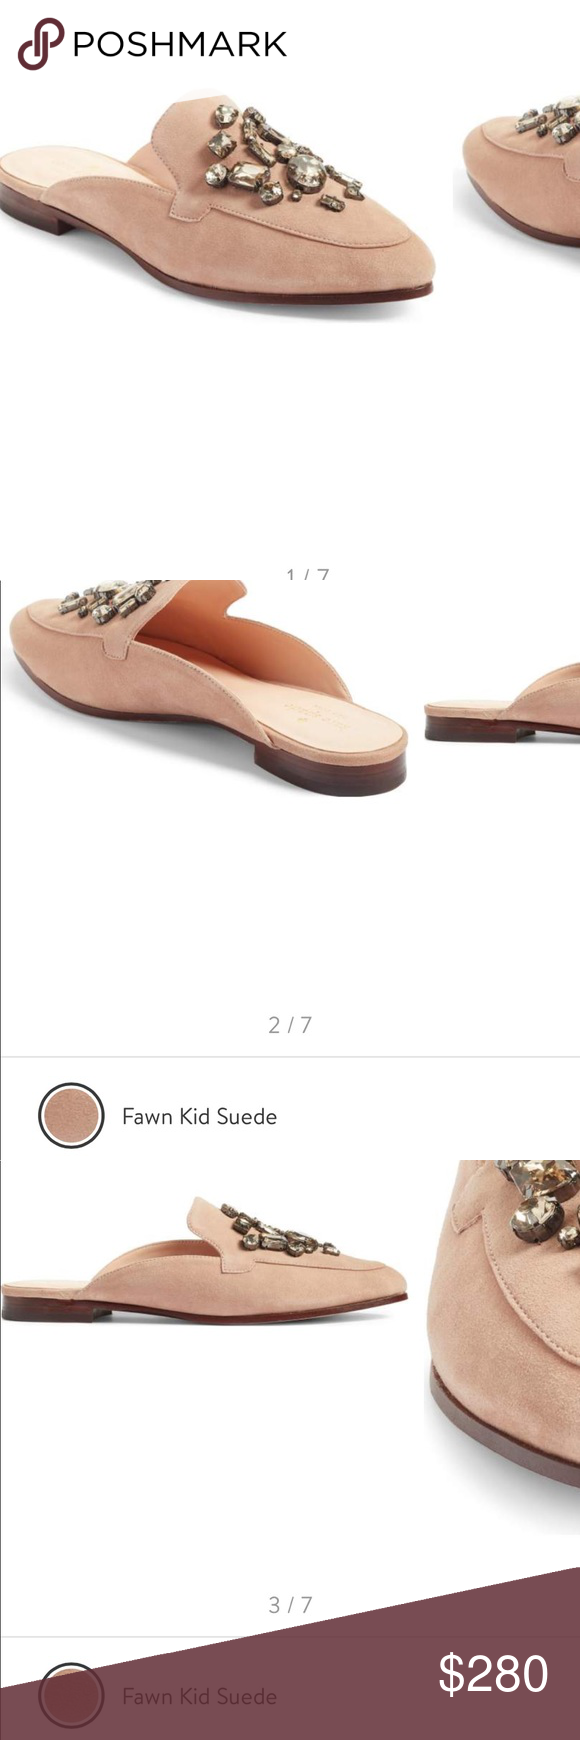 3cdb81b86f95 Kate spade cavell mule blush suede New in box. Selling at Nordstrom  currently for 278  plus tax. NO OFFERS. You also have the option of  🅿️ay🅿️al 270  ...